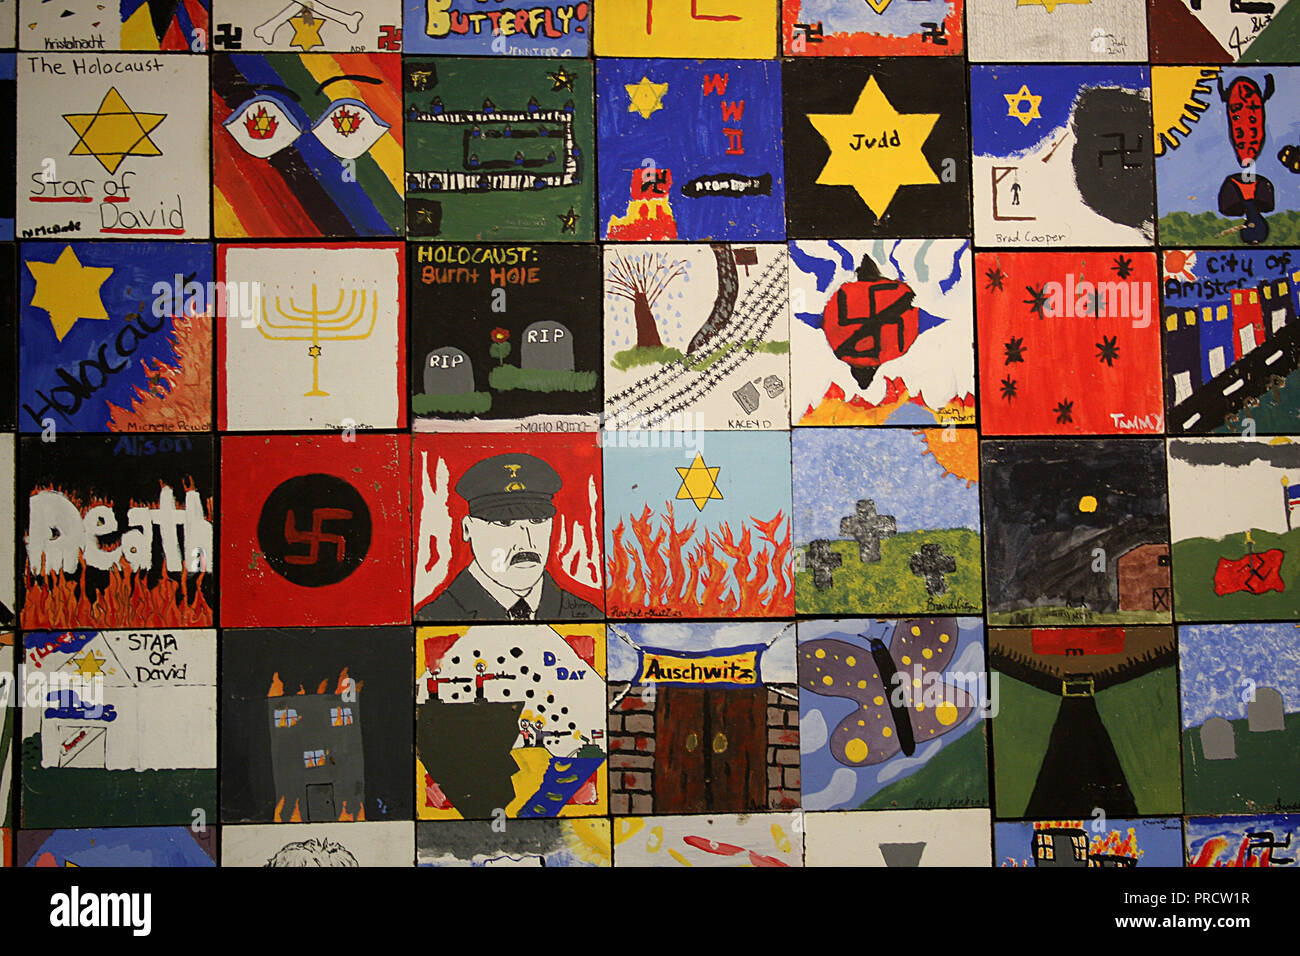 Students' artwork dealing with the theme of the Holocaust displayed  at Virginia Holocaust Museum in Richmond, VA - Stock Image